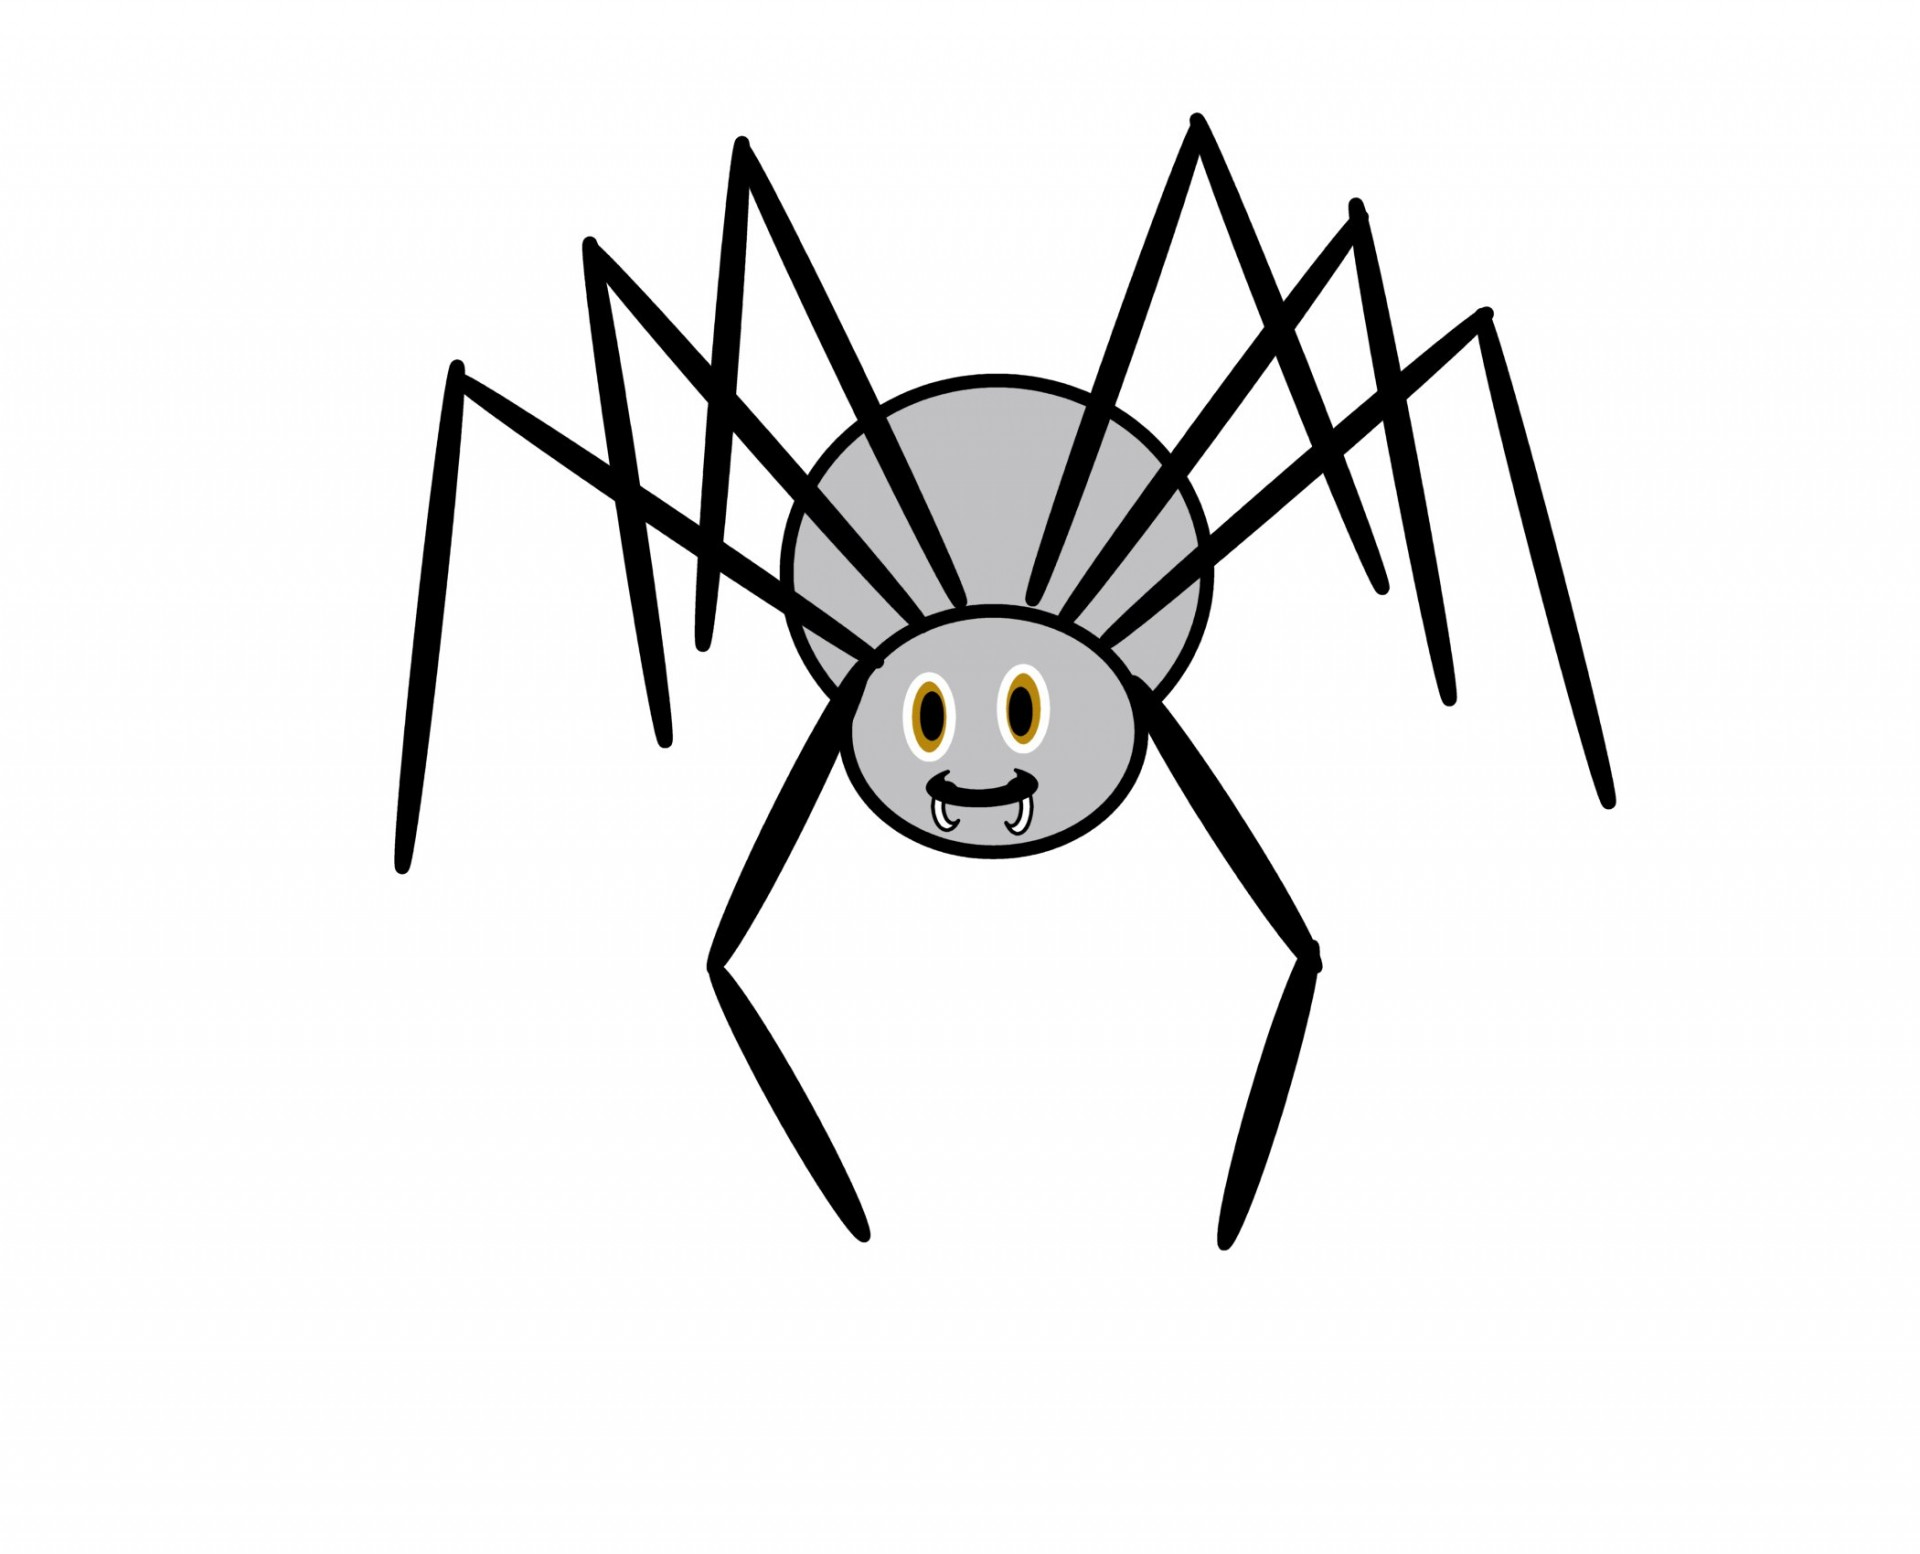 Halloween Hanging Spider Clipart Free Clipart Images